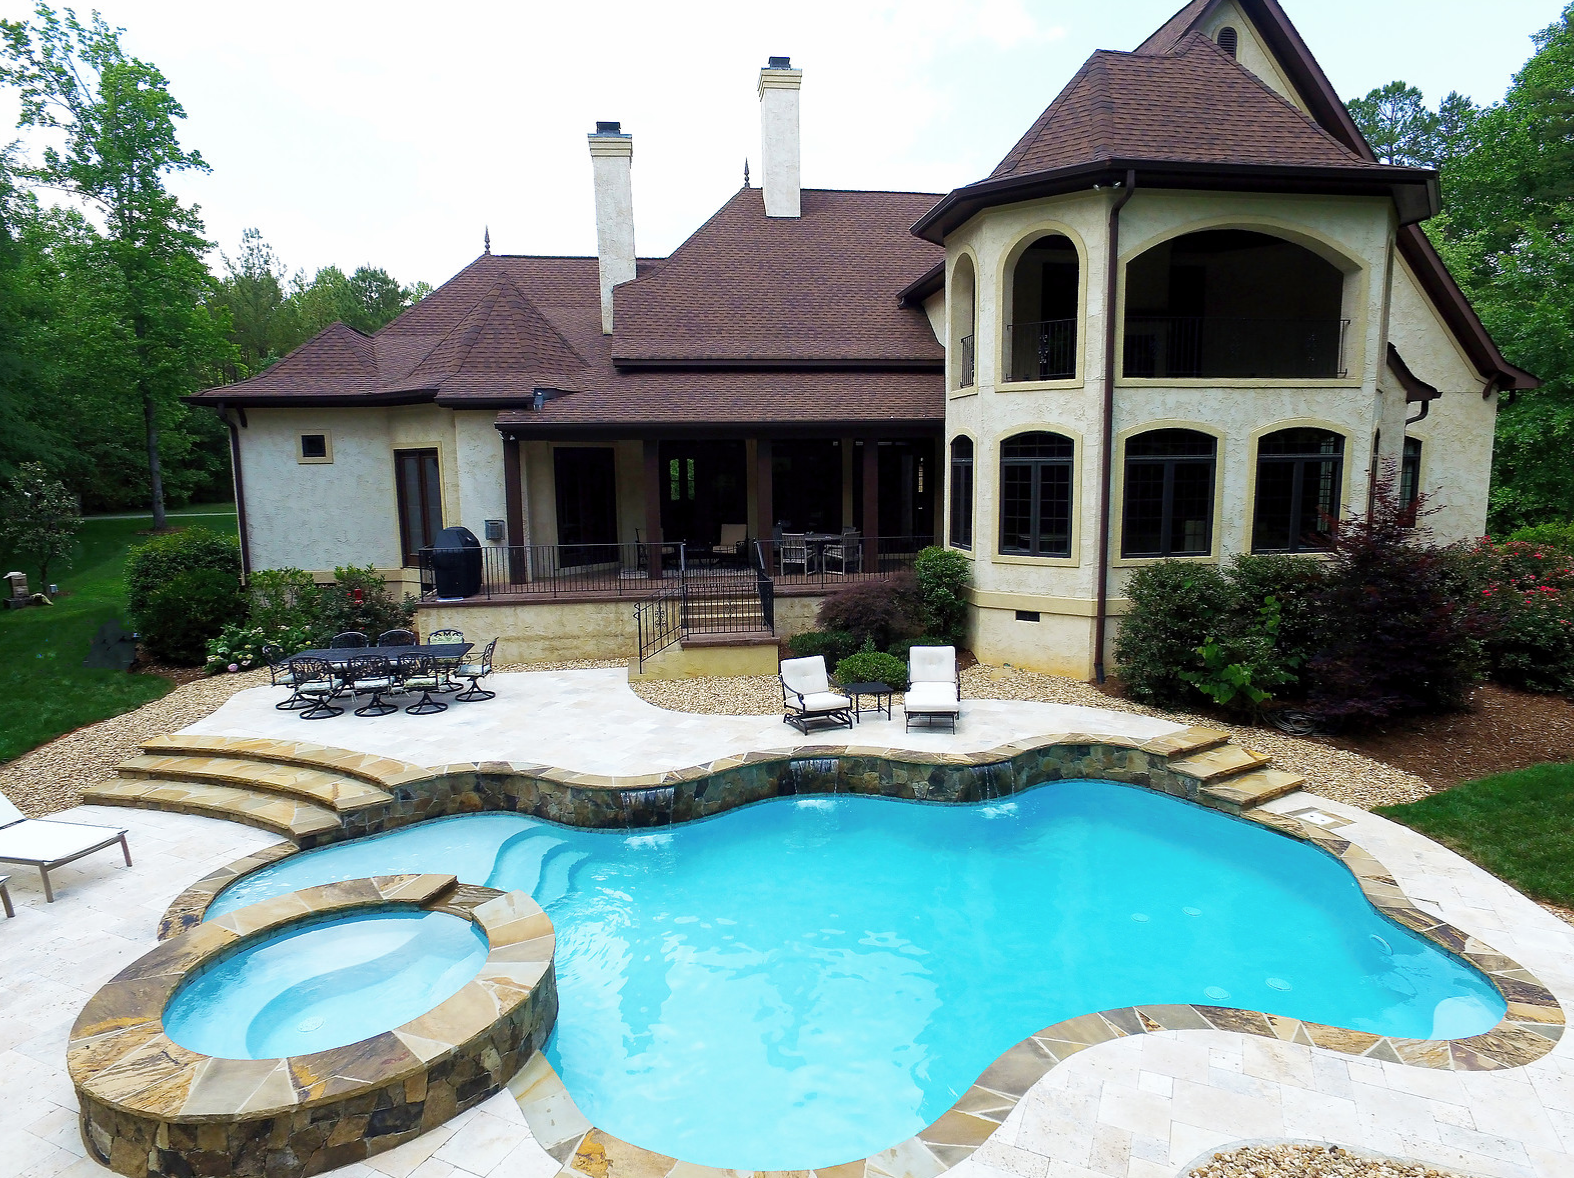 Denver North Carolina Inground Concrete Pools from Carolina Pool Consultants Call 704-799-5236